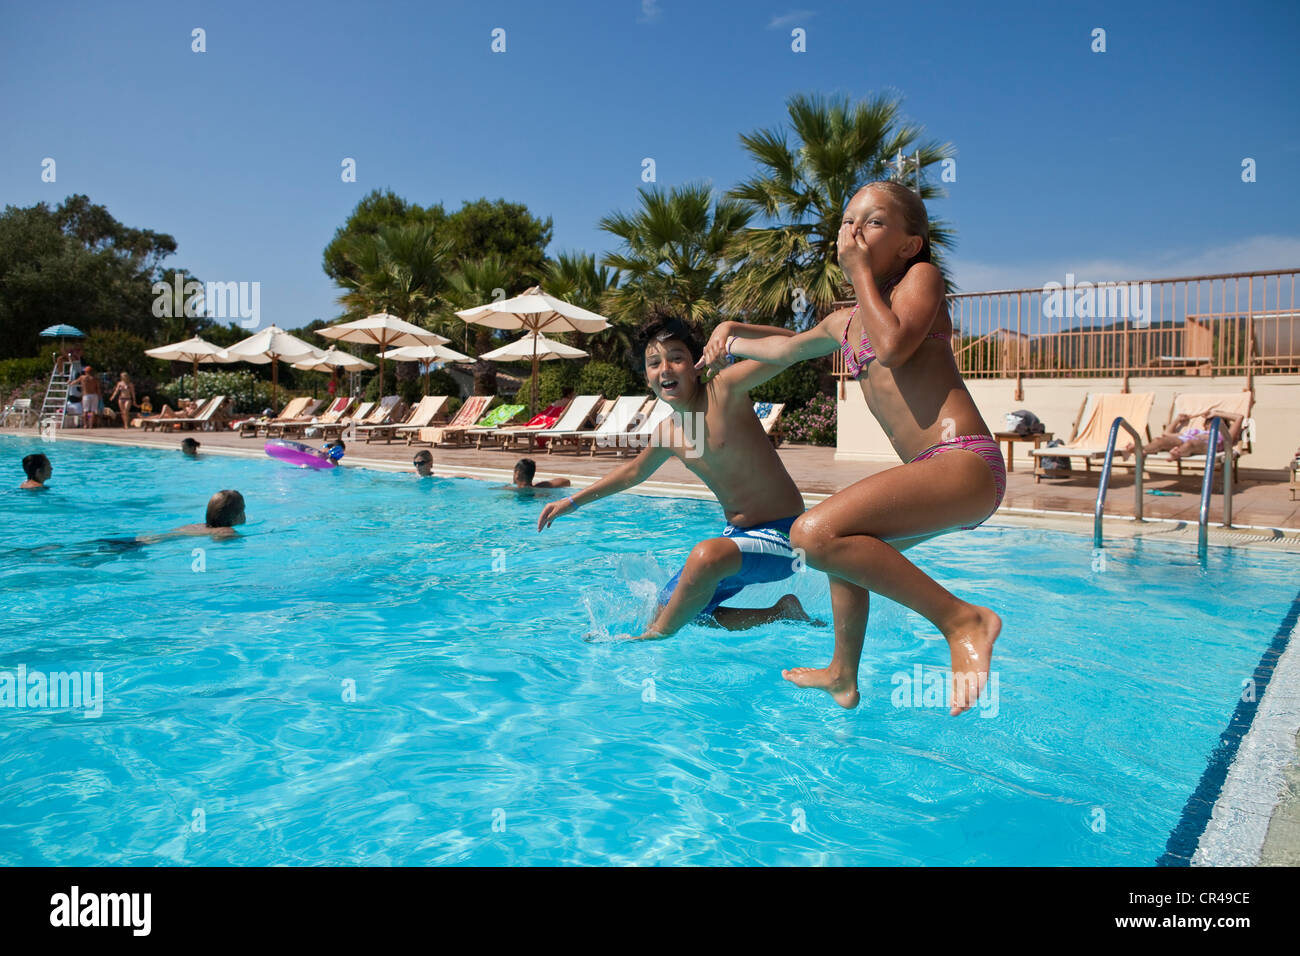 France, Corse-du-Sud, children jumping into the swimming pool - Stock Image